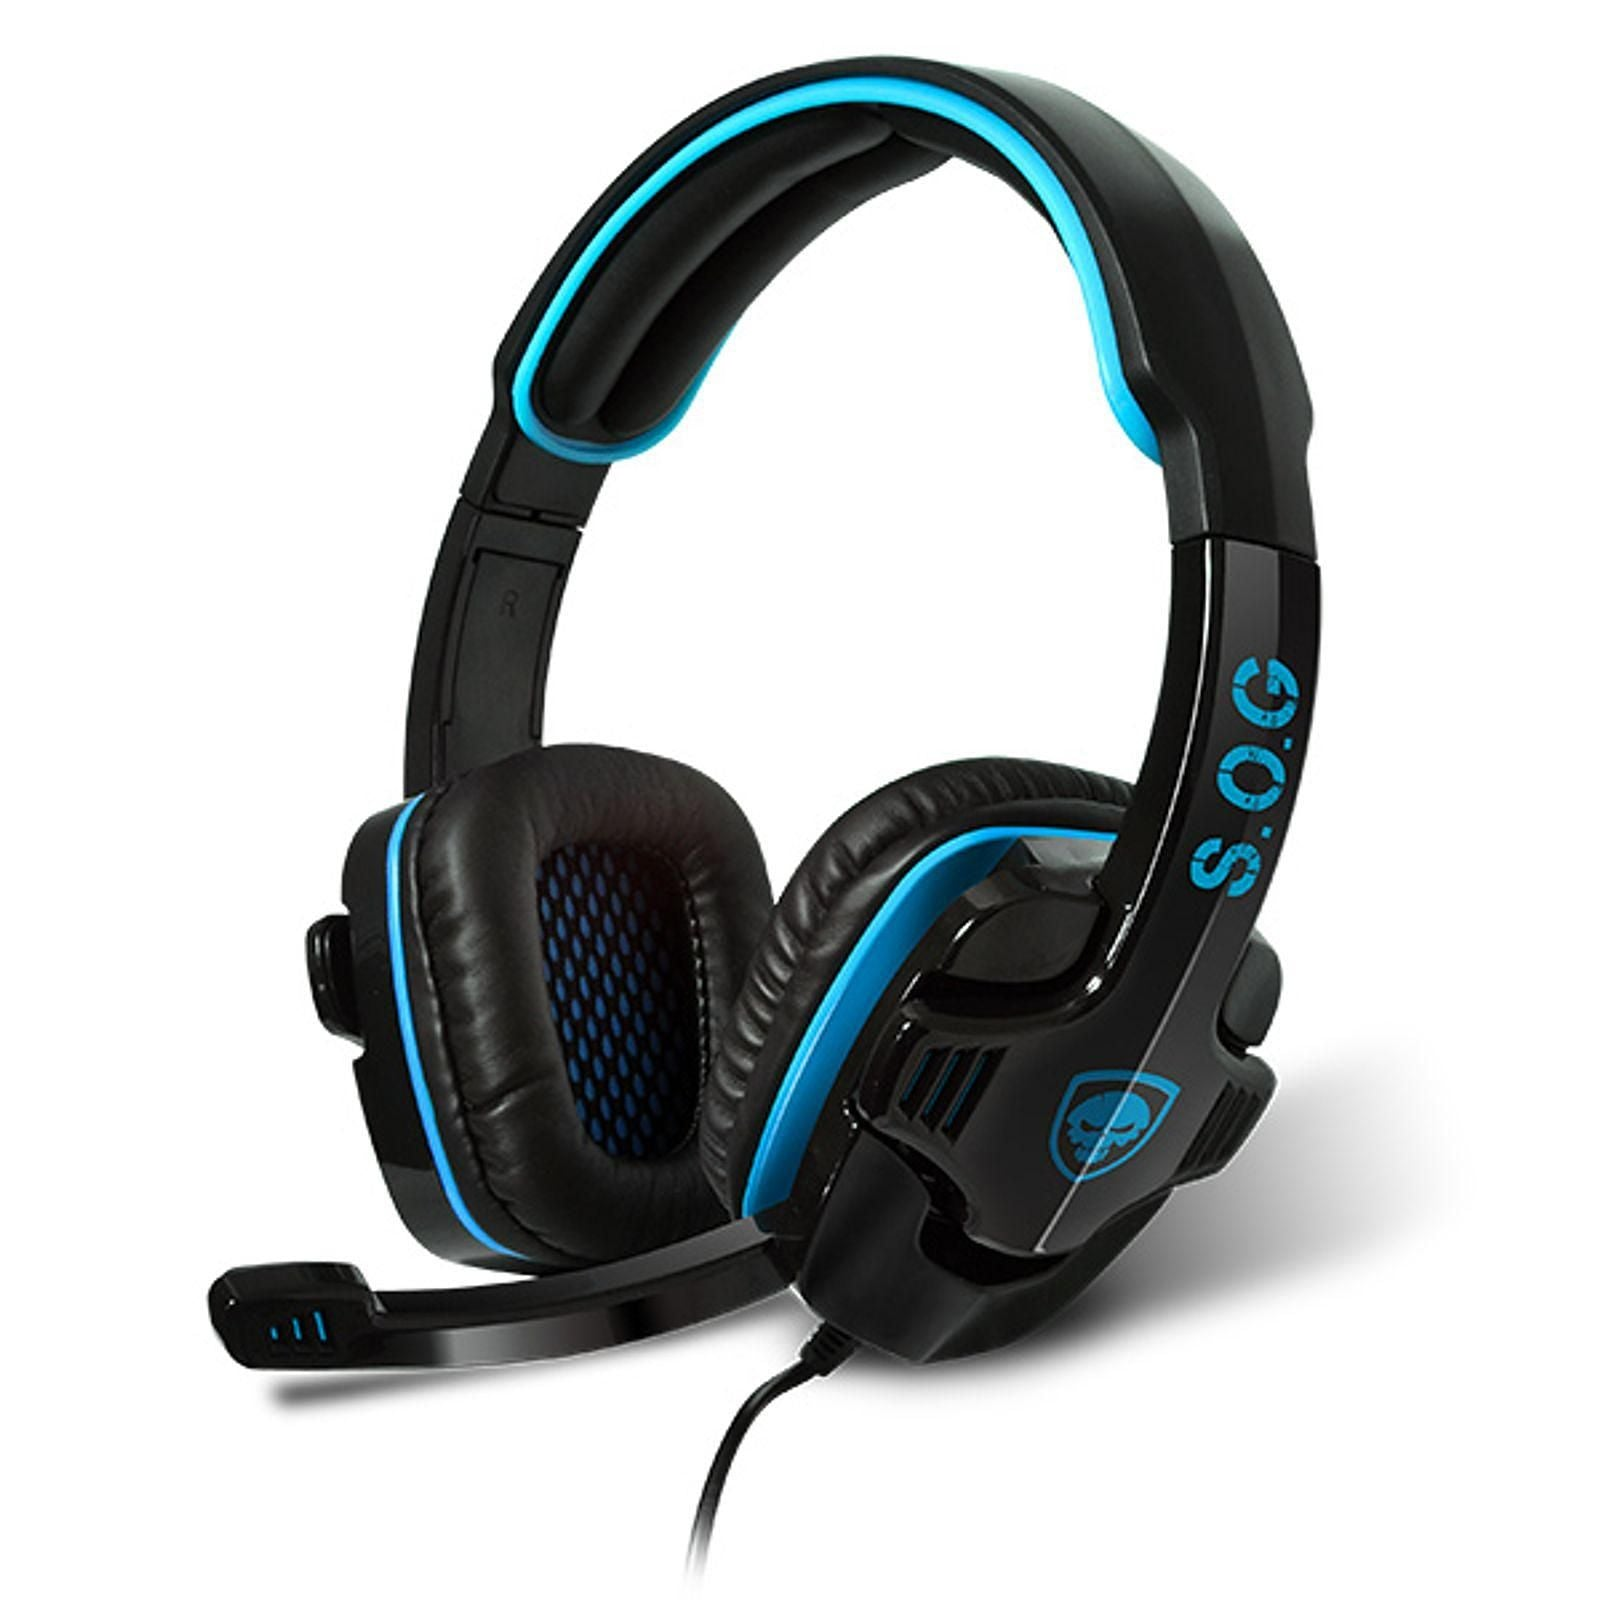 Spirit of Gamer Xpert-H2 - Casque-micro pour gamer son surround 7.1 virtuel (compatible PS3 / PS4 / Xbox 360 / Nintendo Switch / PC) Casque Gaming